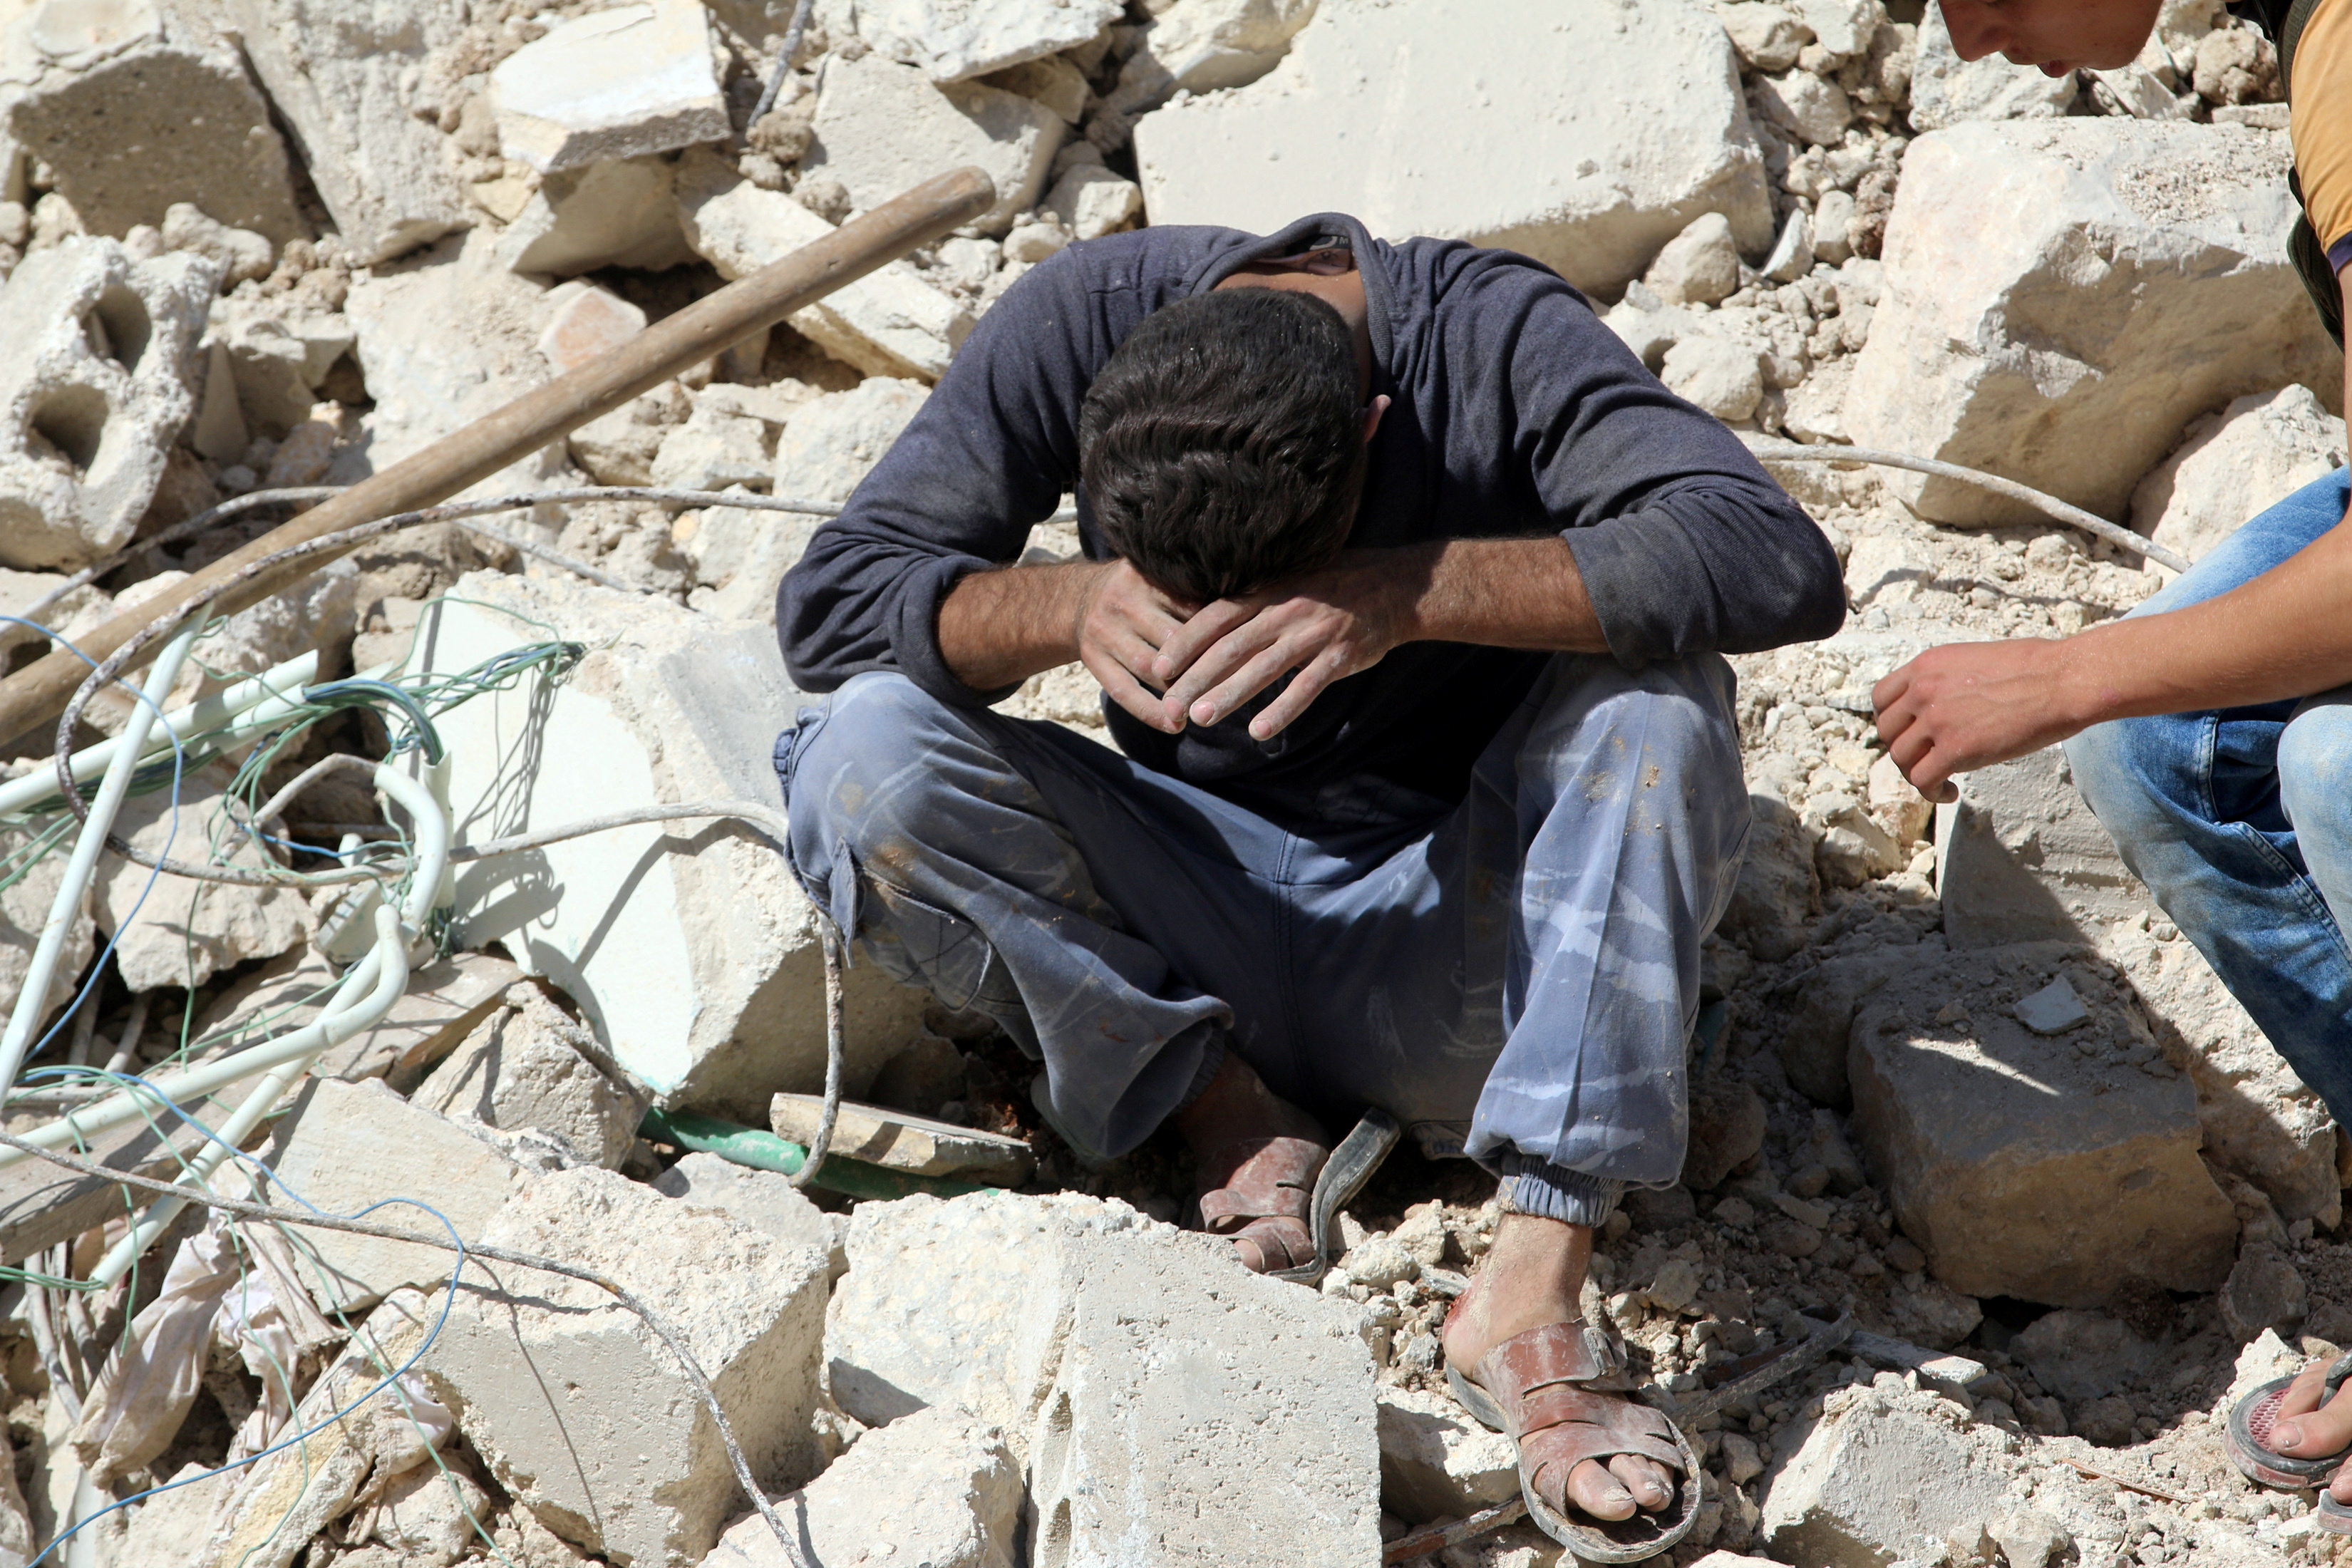 A man reacts on the rubble of damaged buildings after losing relatives to an airstrike in the besieged rebel-held al-Qaterji neighborhood of Aleppo, Syria, Oct. 11, 2016.